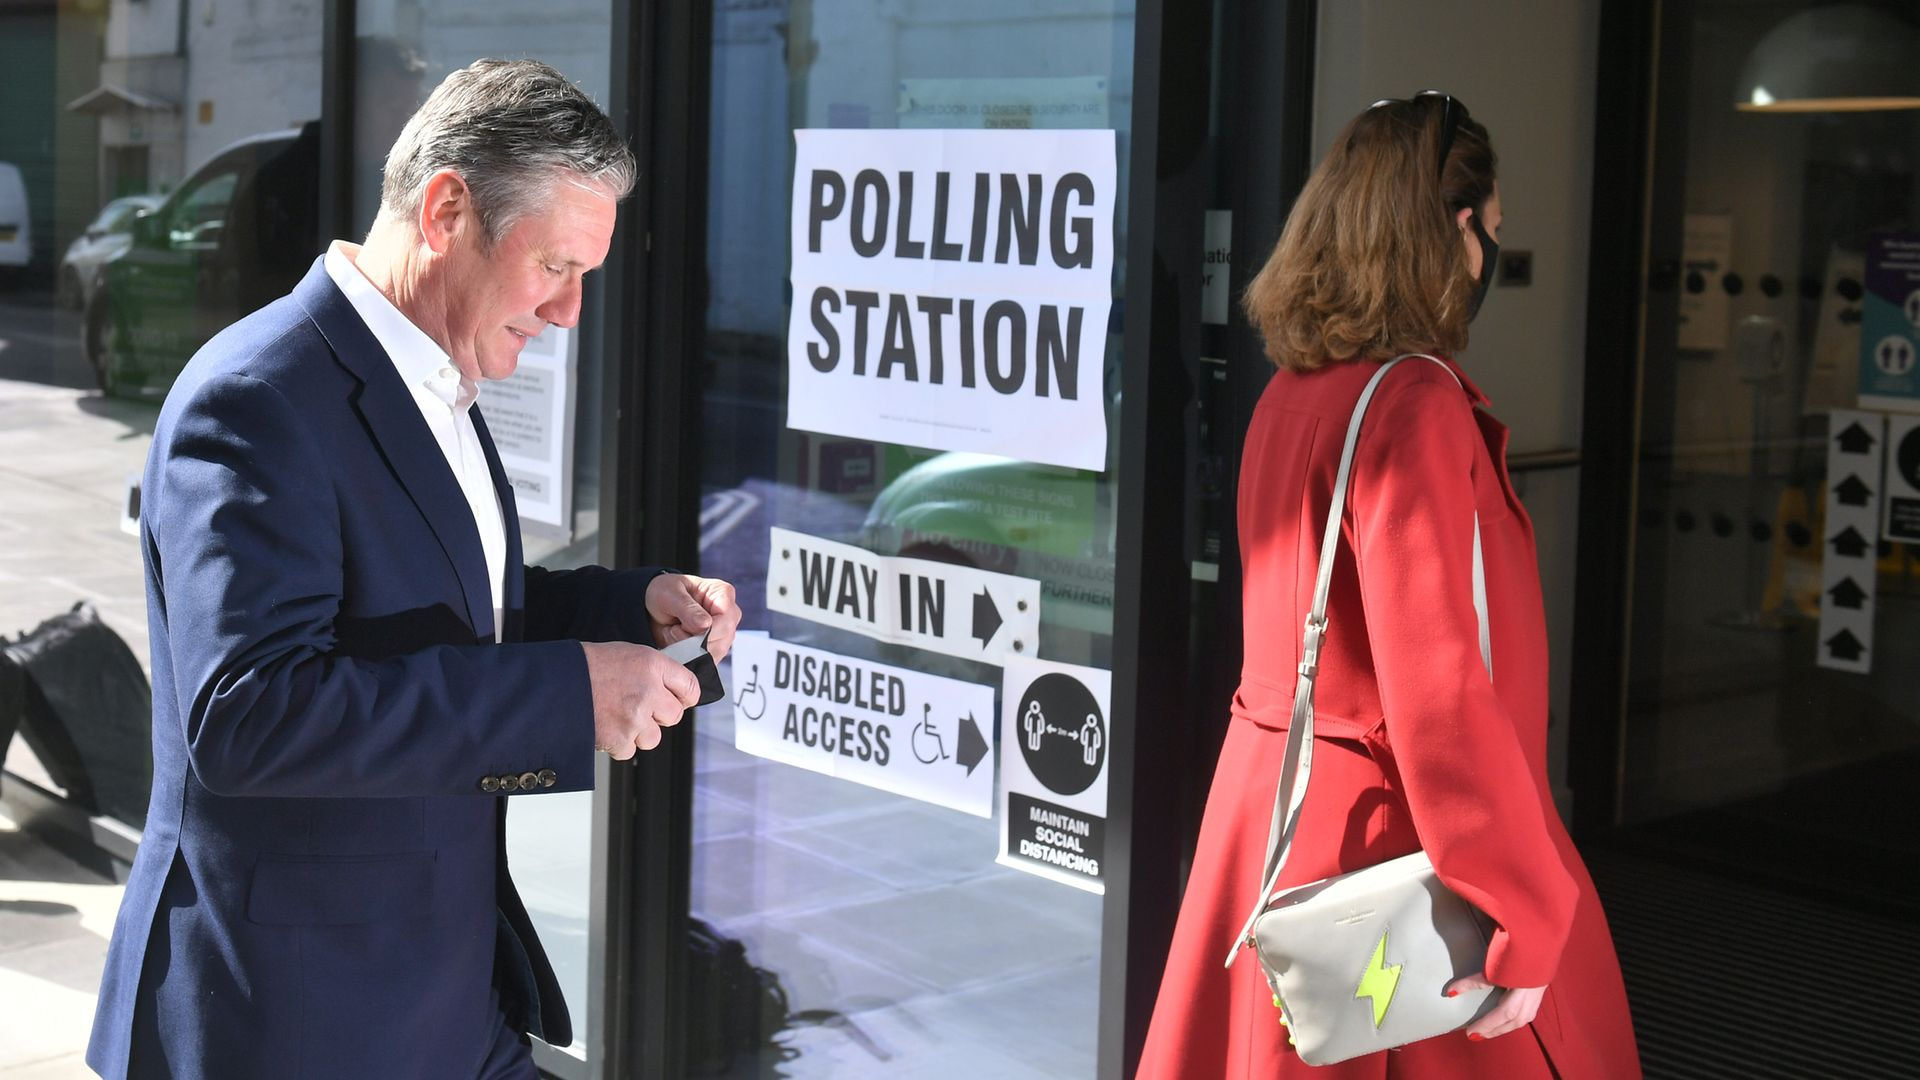 Labour leader Sir Keir Starmer and his wife Victoria arrive to cast their vote - Credit: PA